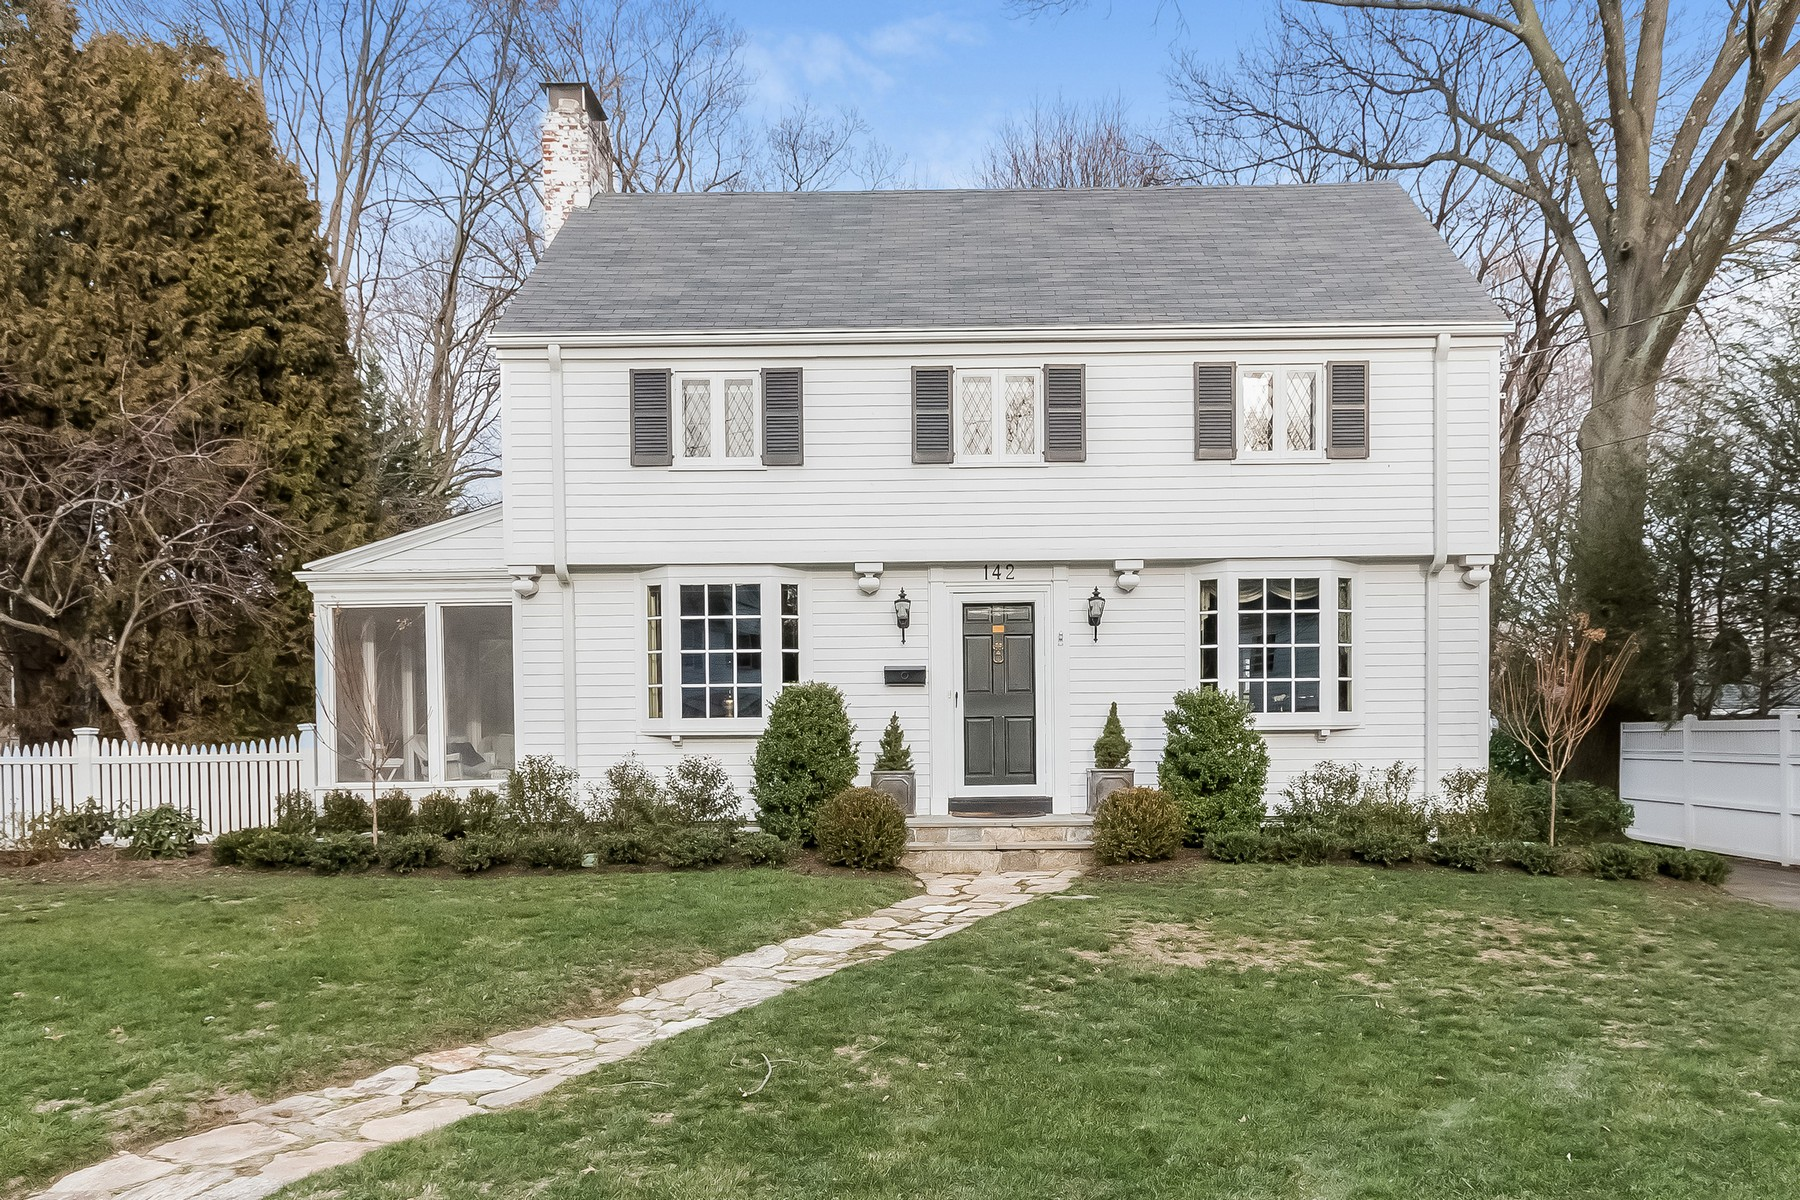 Property For Sale at Storybook Colonial in Desirable Stratfield Village